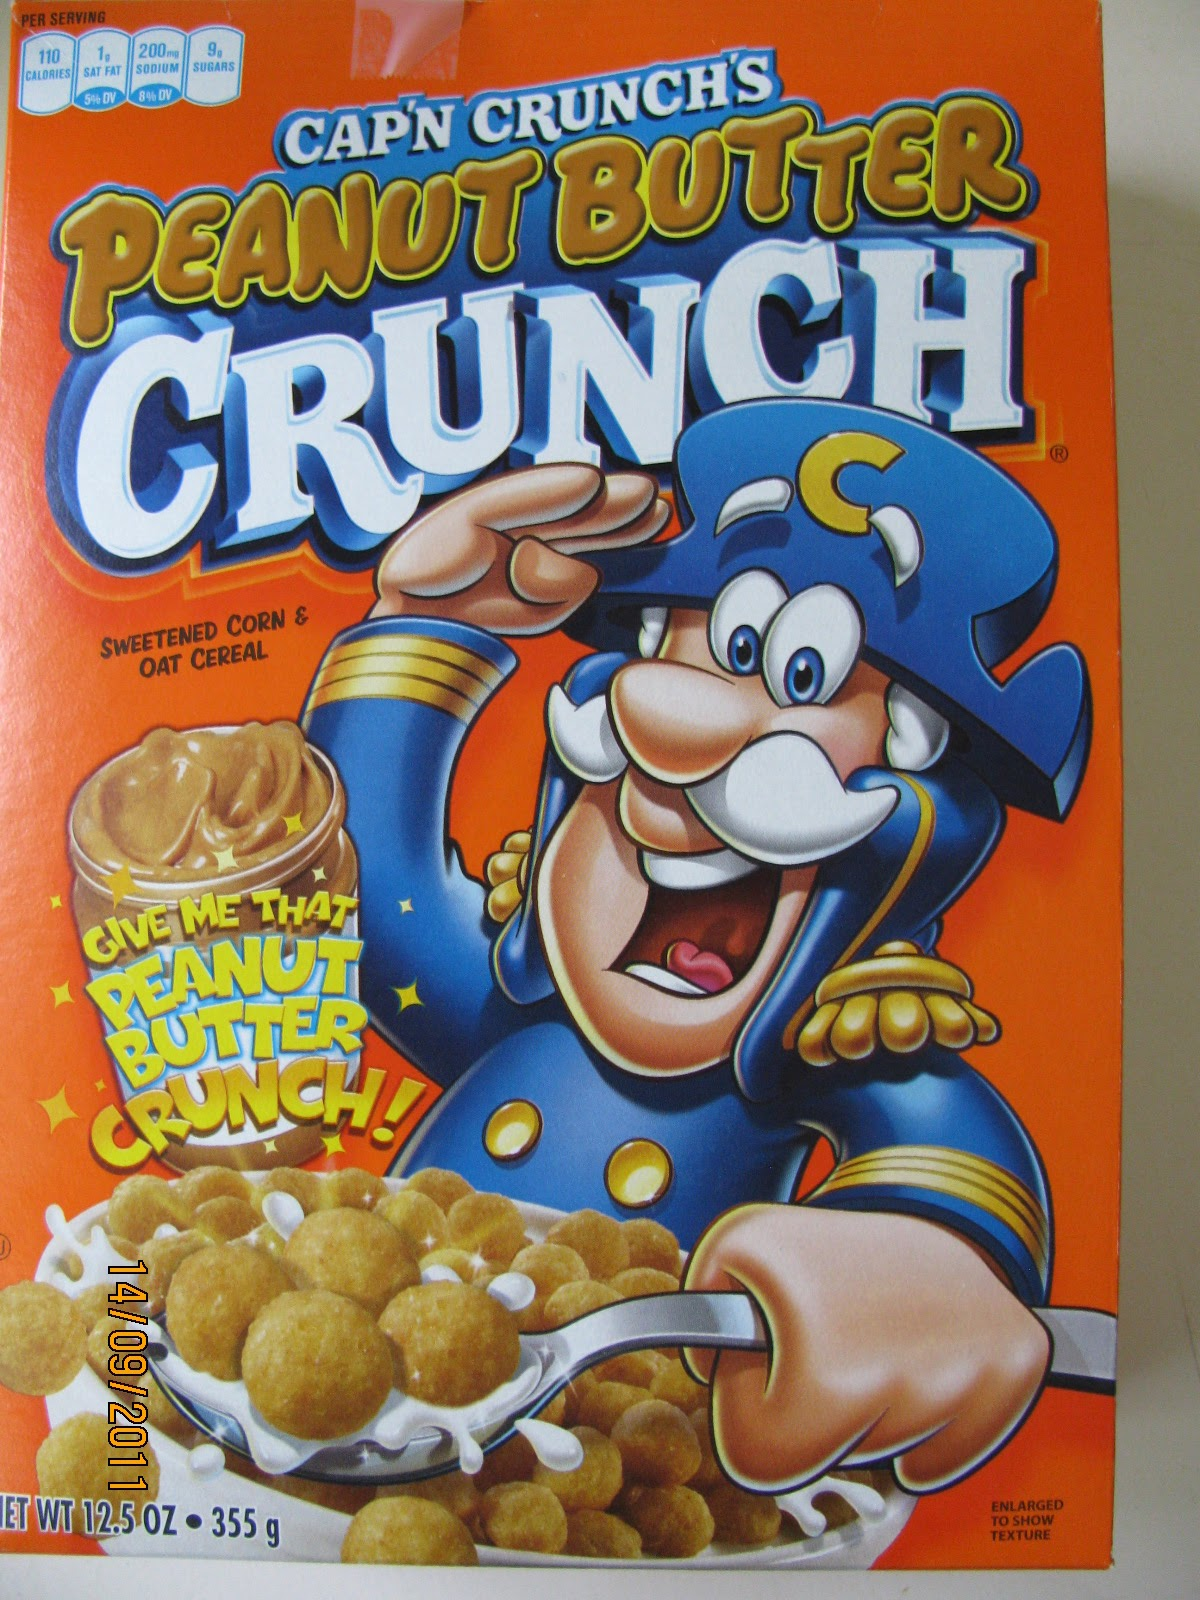 ... online is whether or not cap n crunch peanut butter cereal is vegan